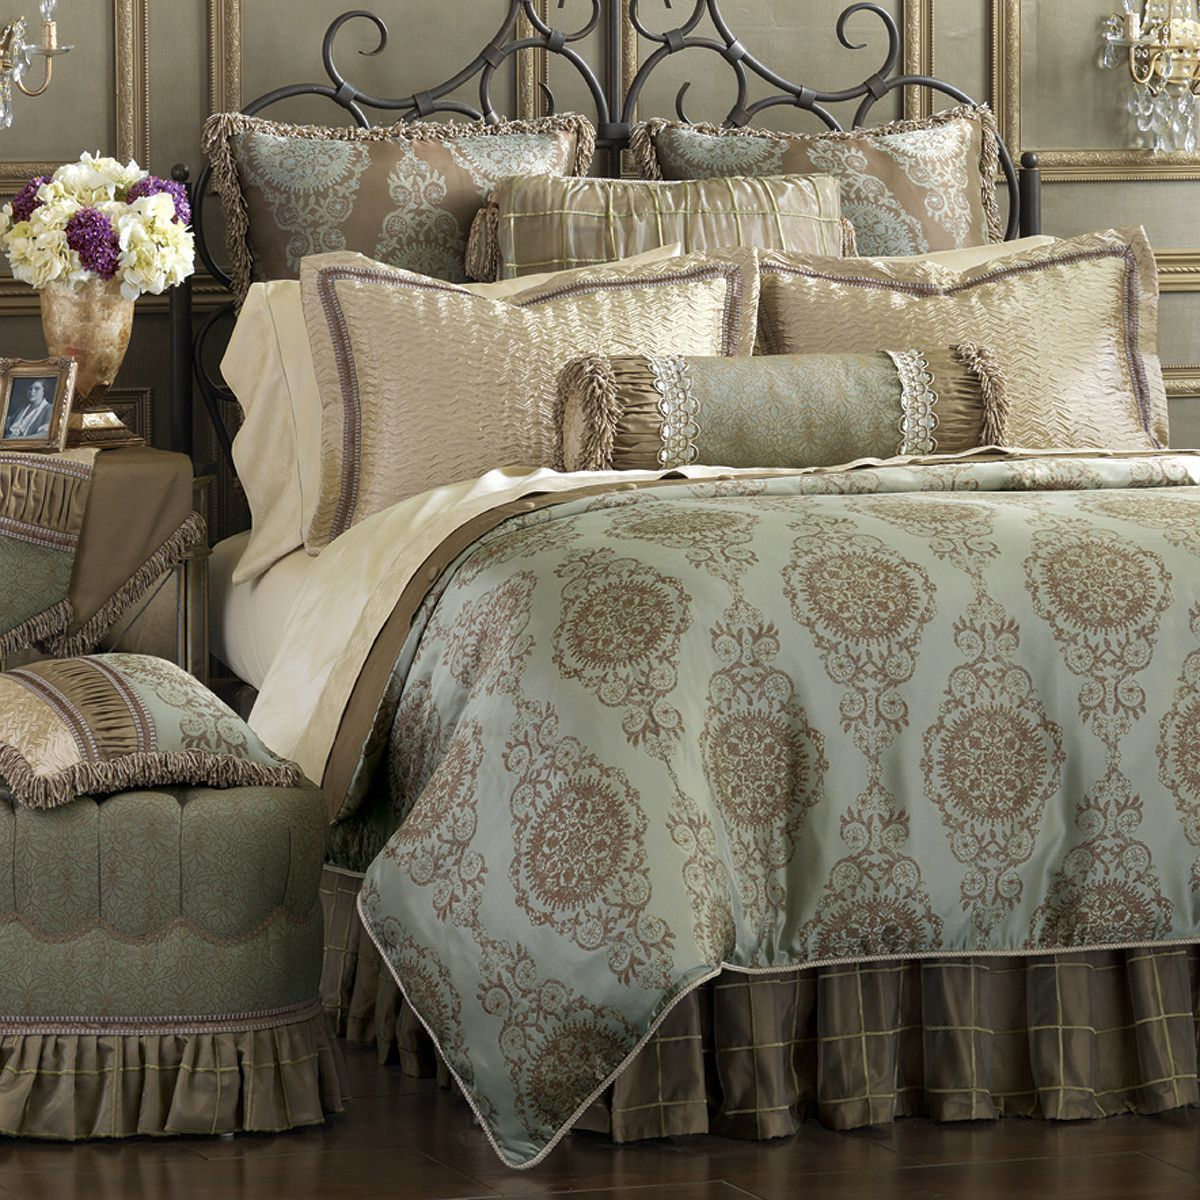 Briseyda Bedding Collection